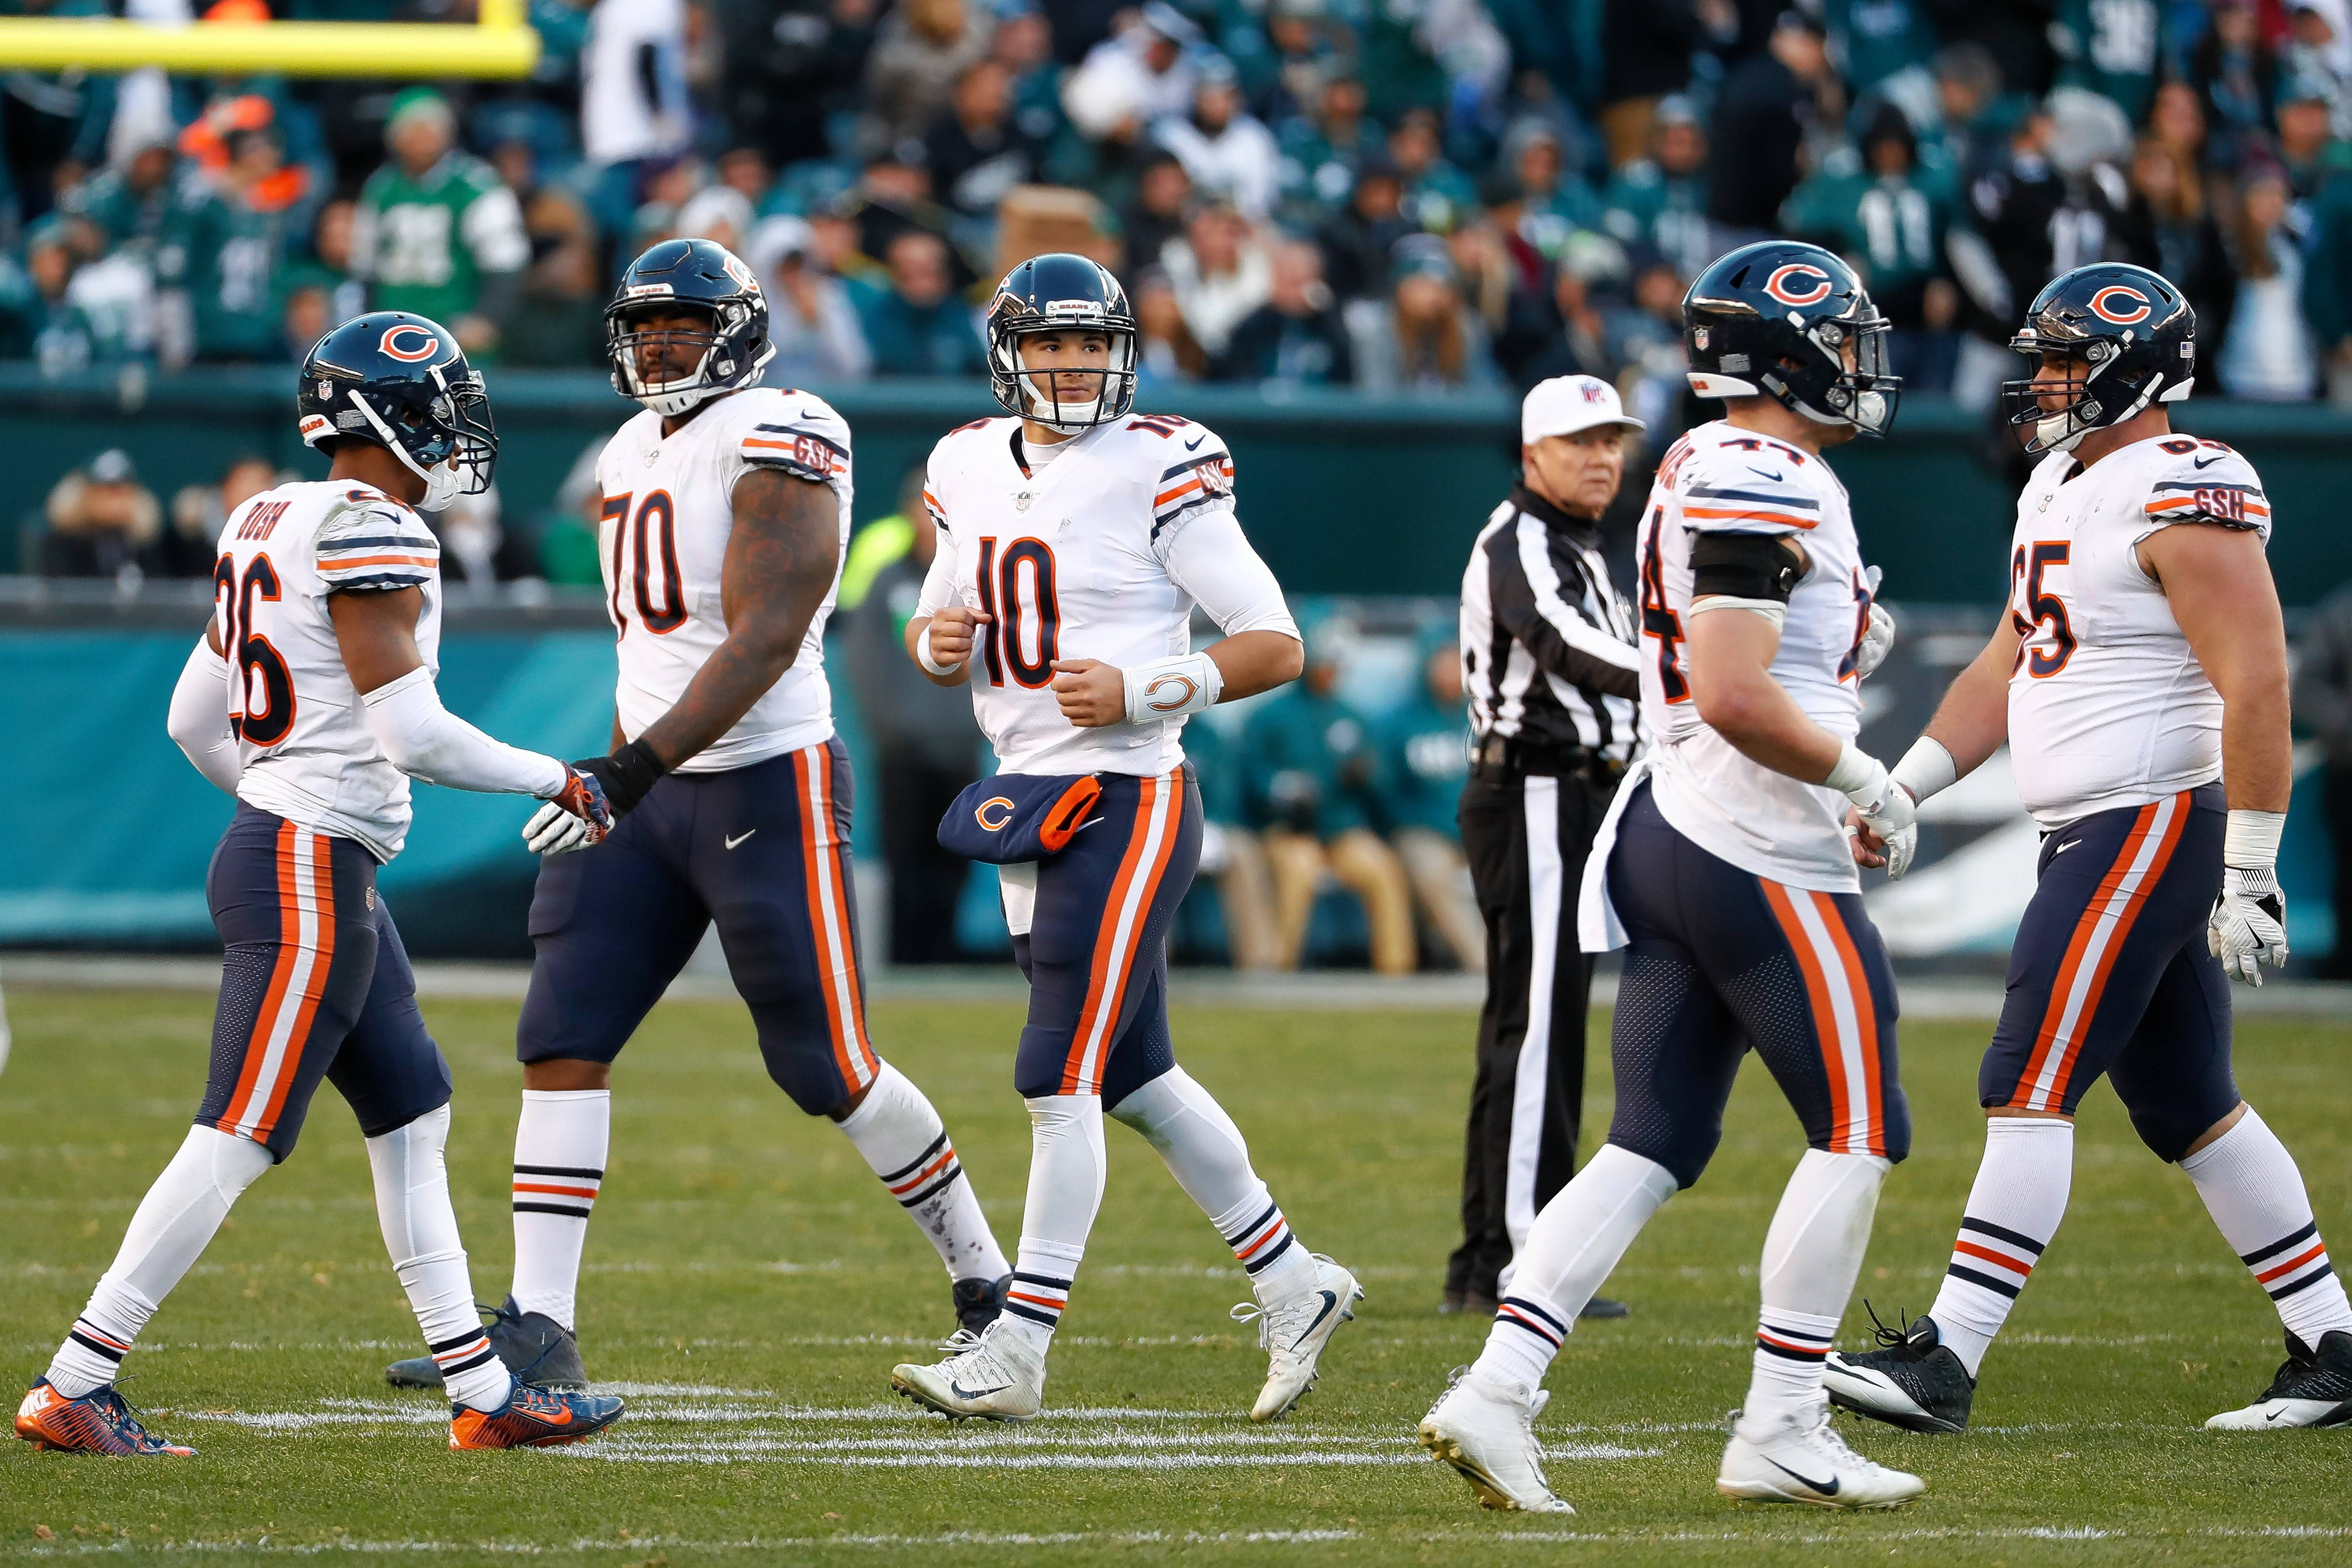 "Chicago Bears' Mitchell Trubisky is embracing his role as team leader as the Bears try and regroup from their blowout loss to the Eagles. ""I feel like I know how to handle these situations,"" Trubisky said."